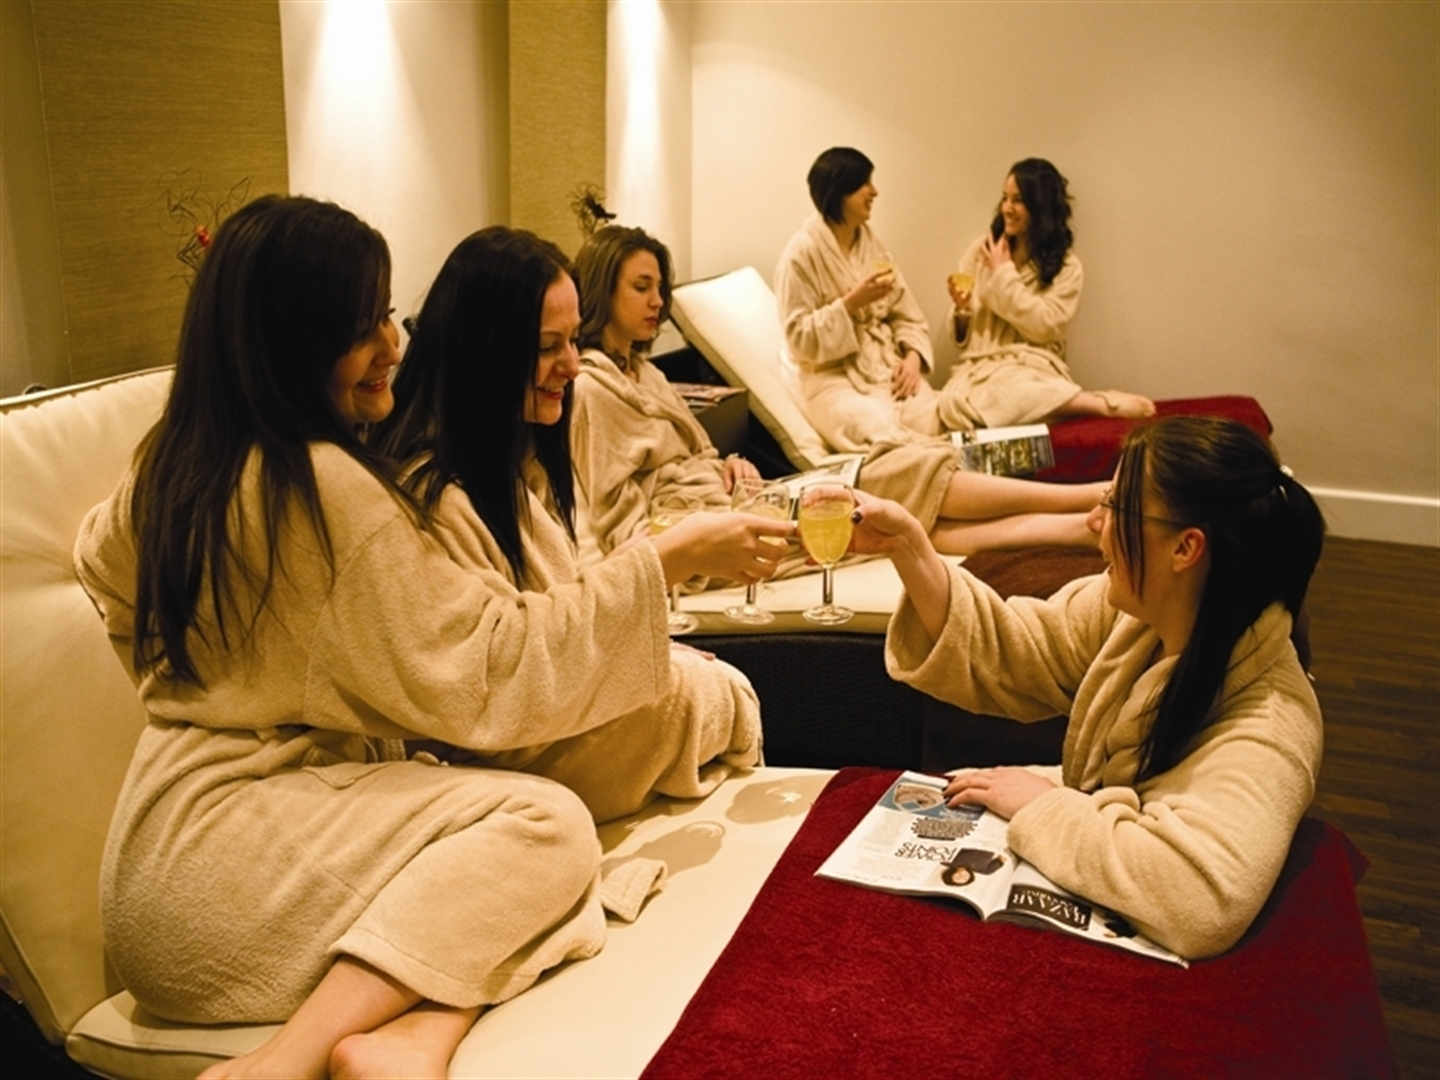 SpaSeekers • Spa Days and Breaks near Southport, Merseyside